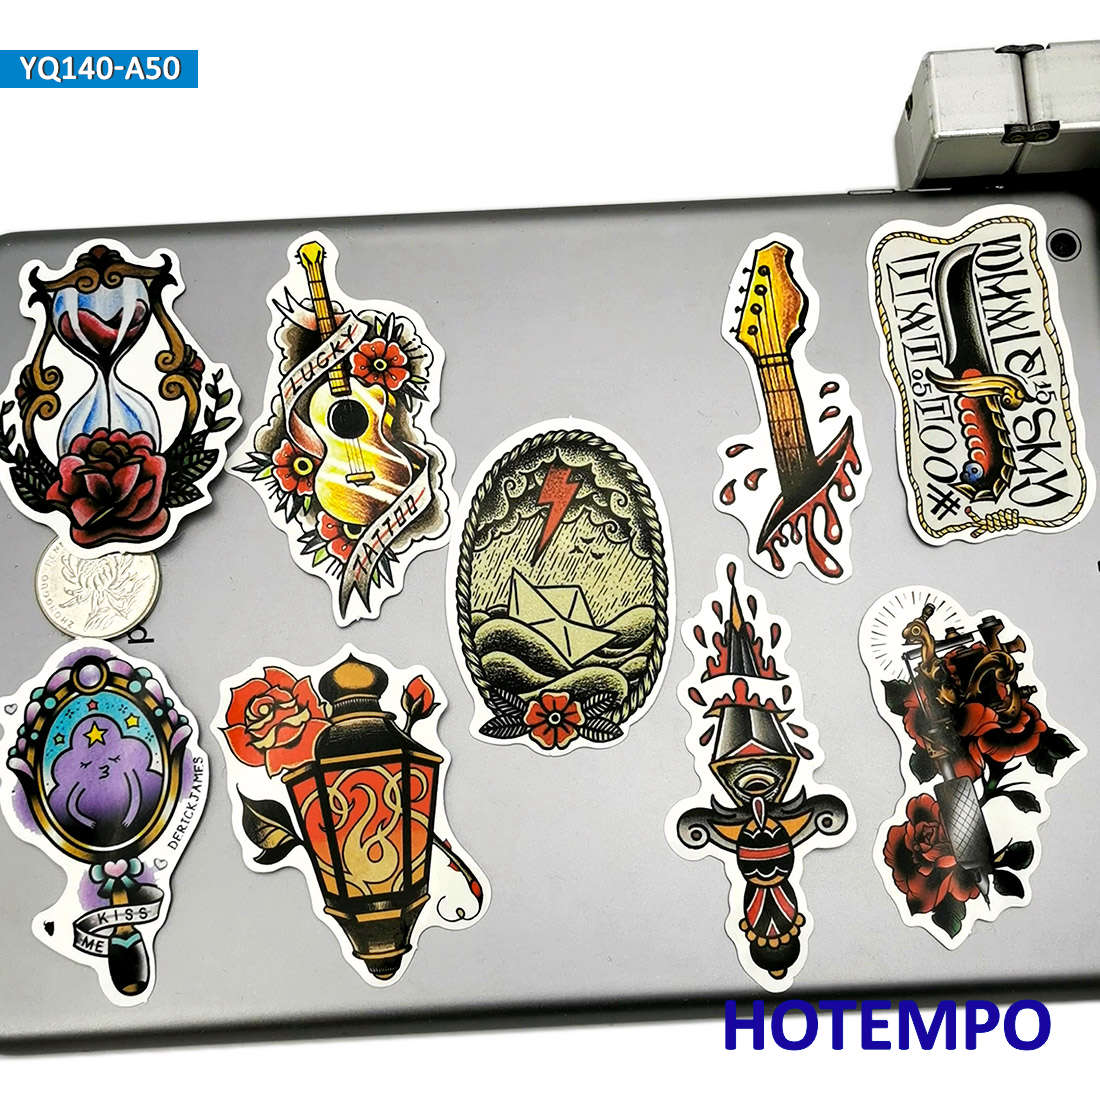 50pcs Old School Style Painting Graffiti Retro Fashion Tattoo Mix Art Skool Stickers for DIY Mobile Phone Laptop Luggage Sticker